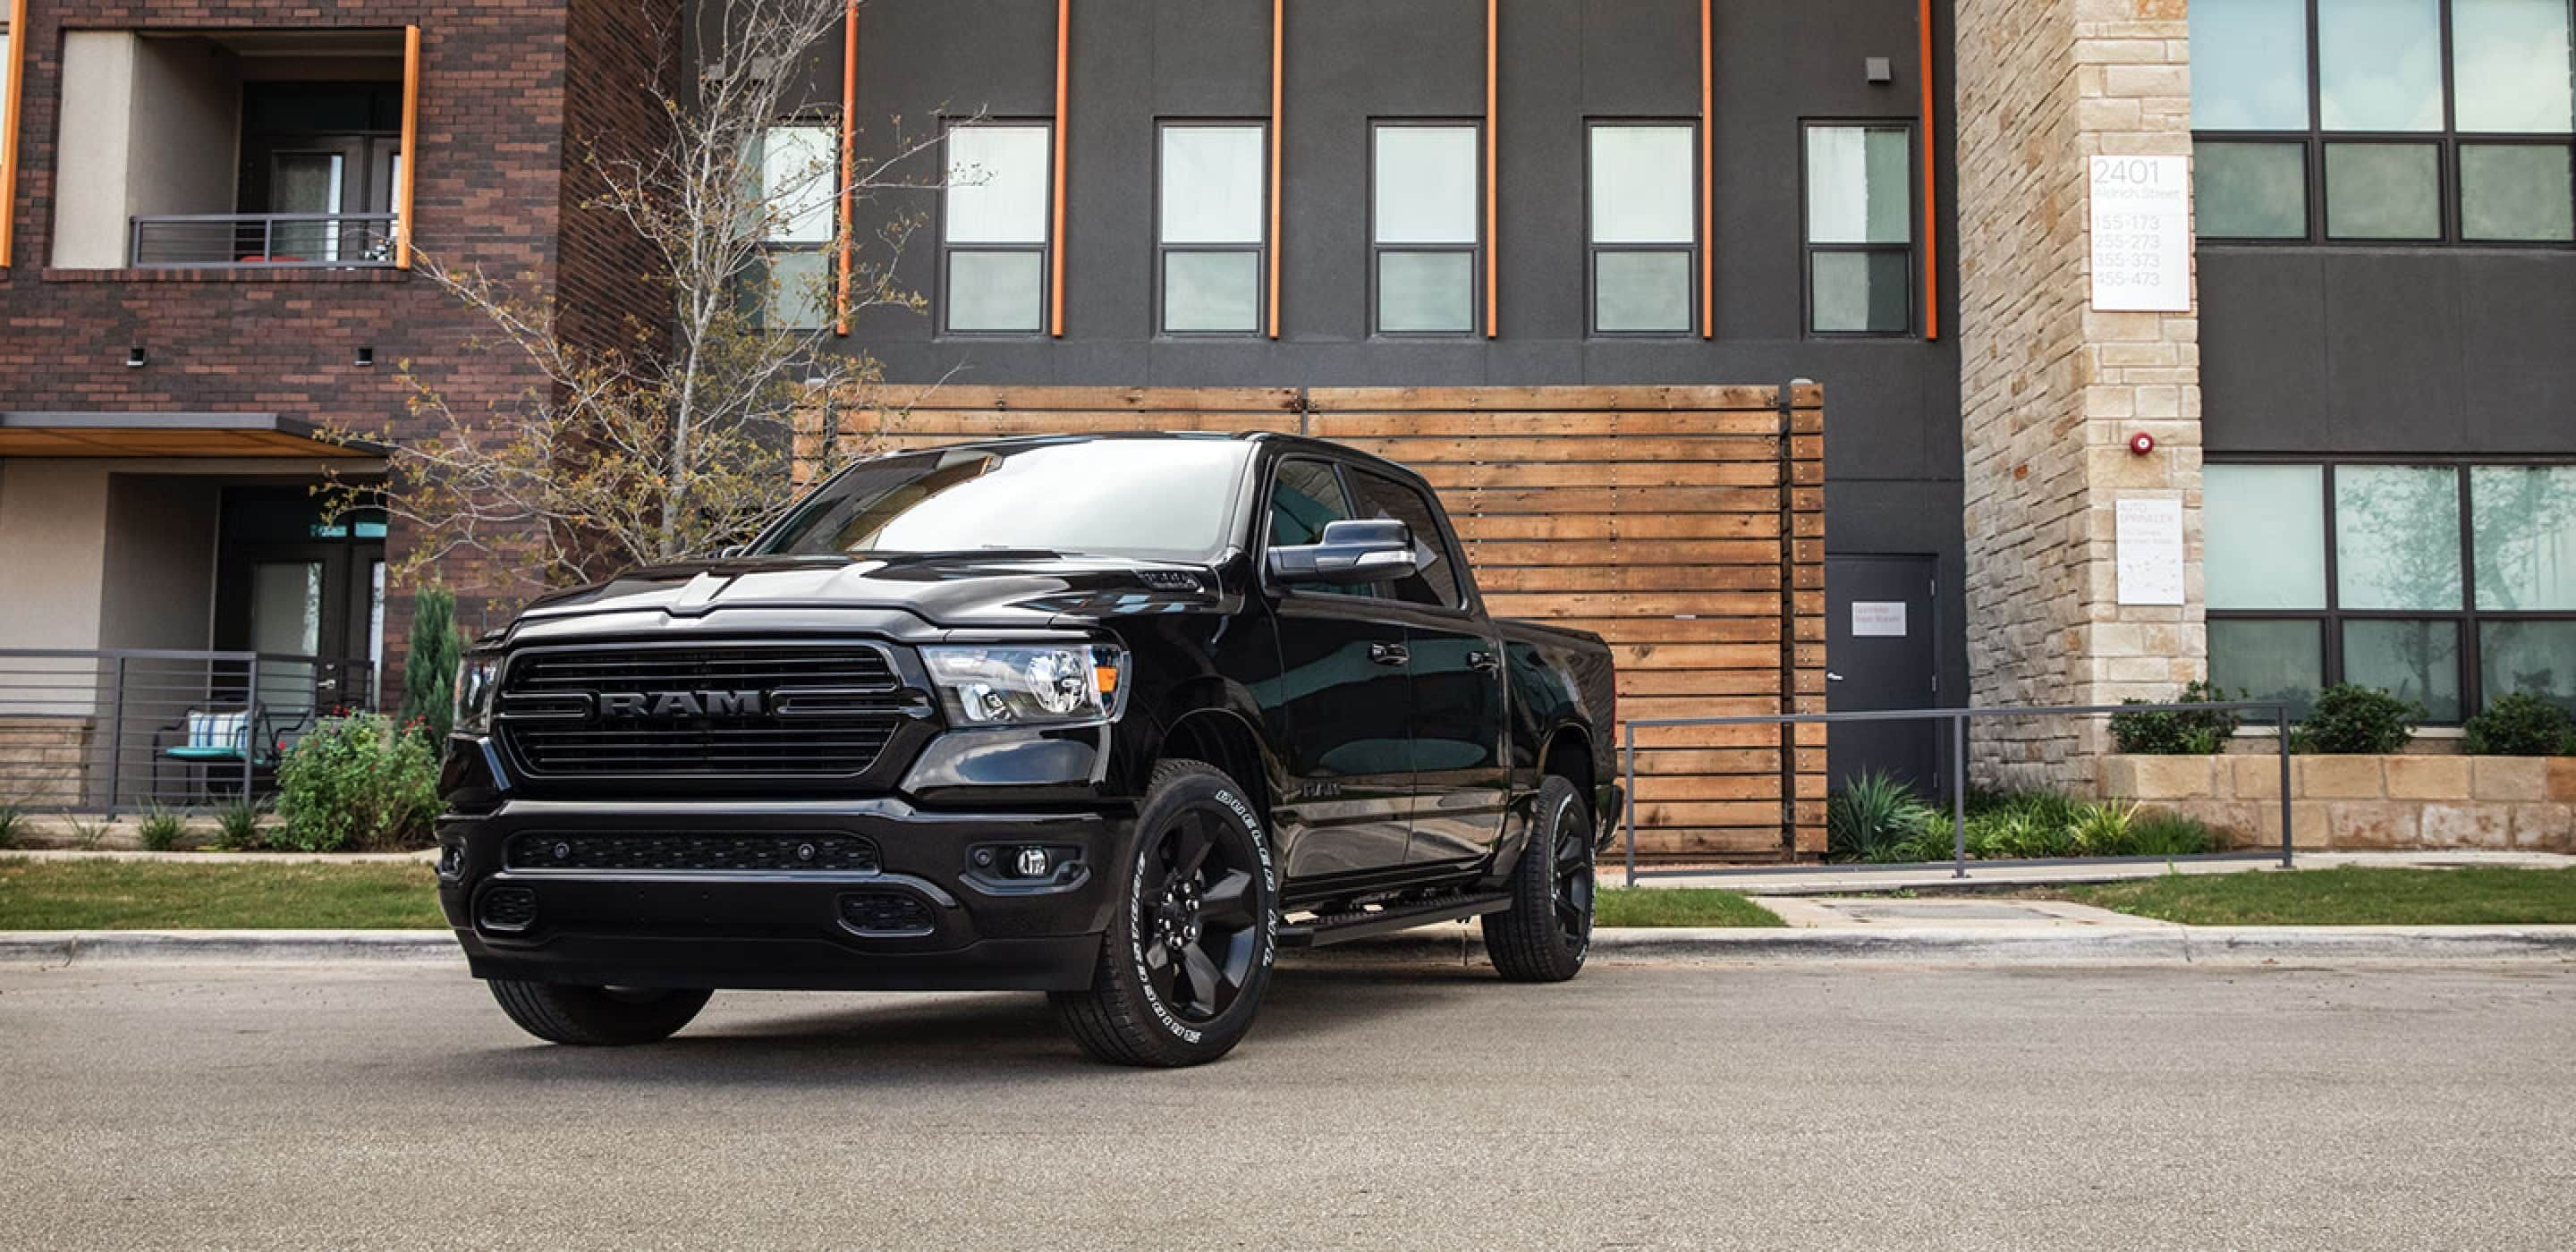 2021 Ram 1500 Review Pricing And Specs